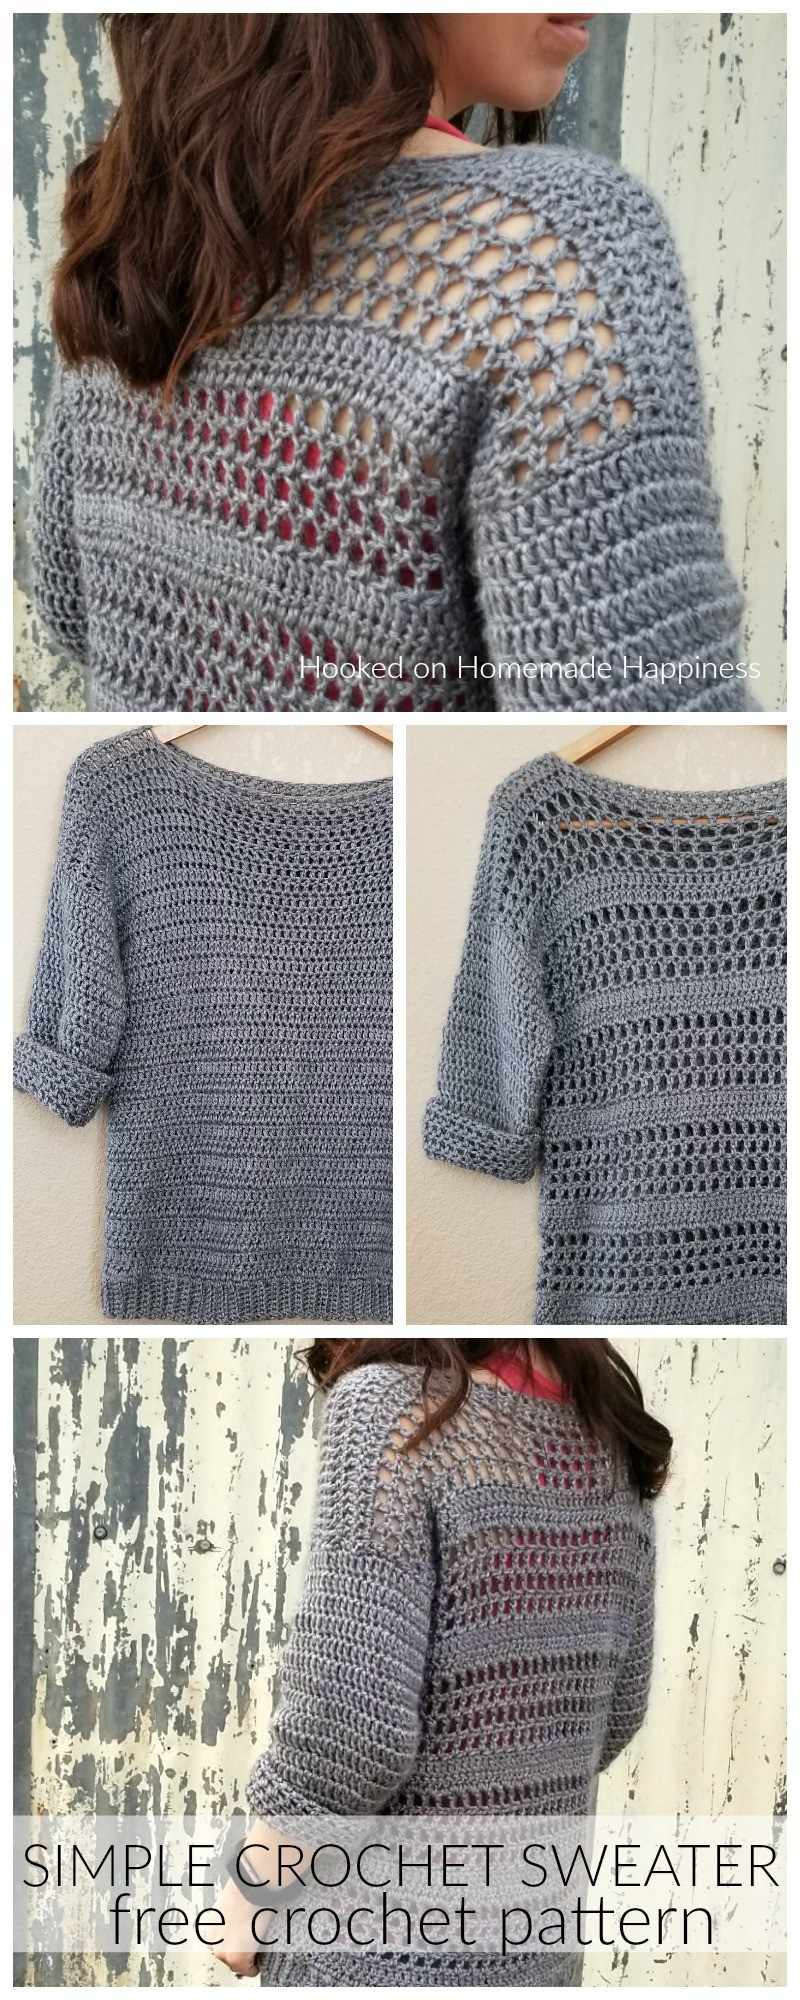 Lovely Simple Crochet Sweater Pattern Easy Crochet Sweater Pattern Of Elegant Telluride Easy Knit Kimono Pattern – Mama In A Stitch Easy Crochet Sweater Pattern